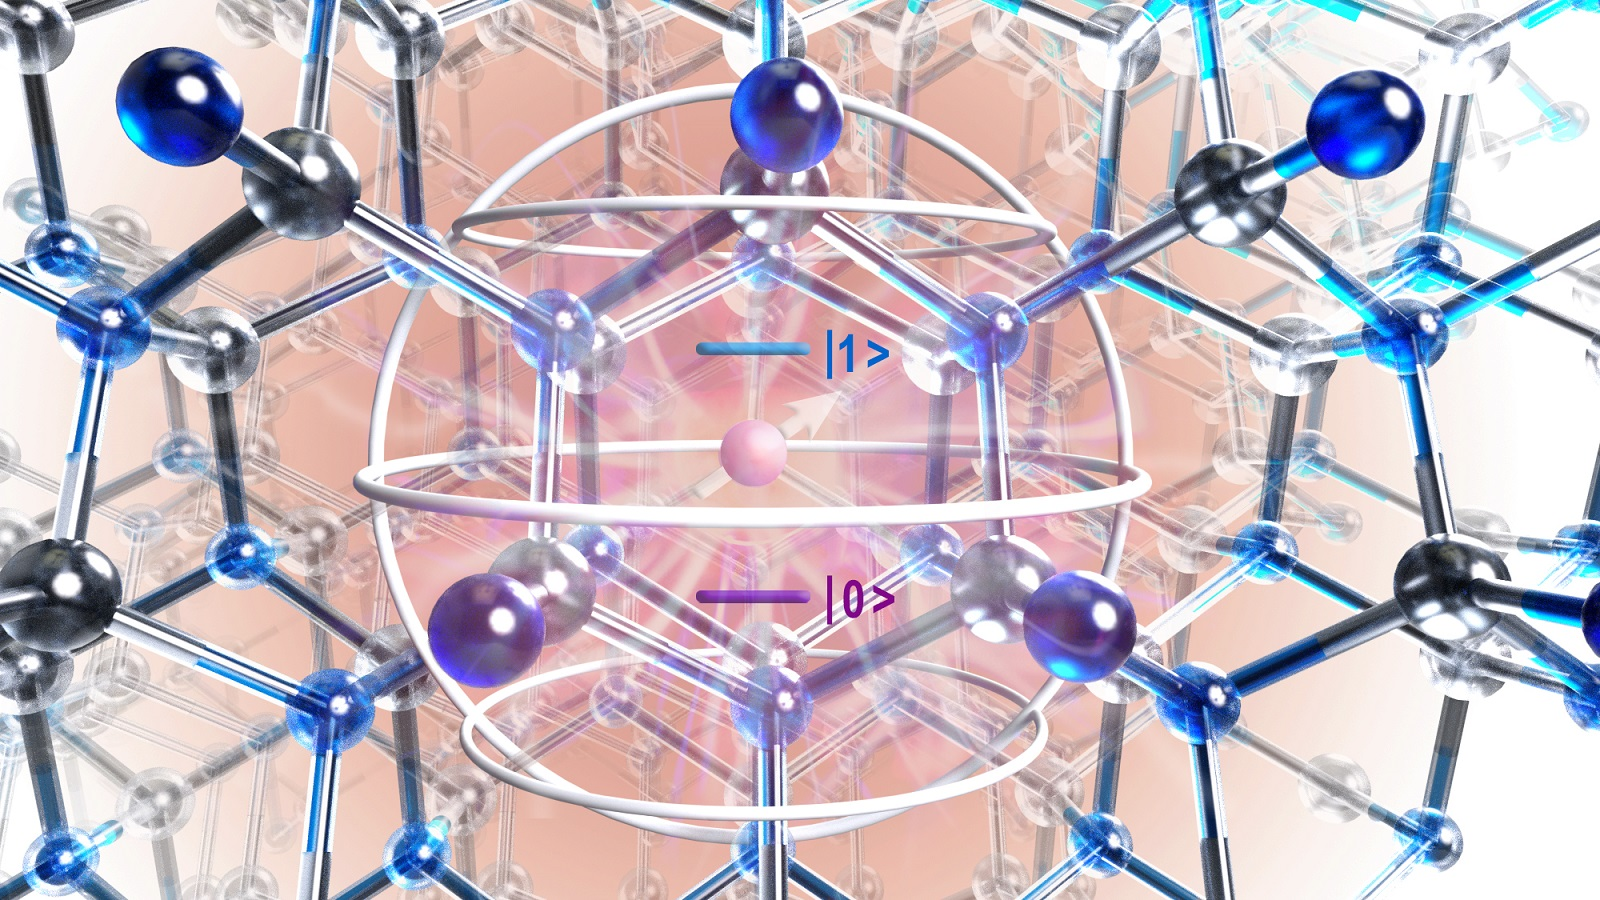 Artistic rendering of atomic structure of silicon carbide crystal showing defect (purple circle) and region of interest identified with quantum mechanical theory (silver sphere). (Image by University of Chicago.)